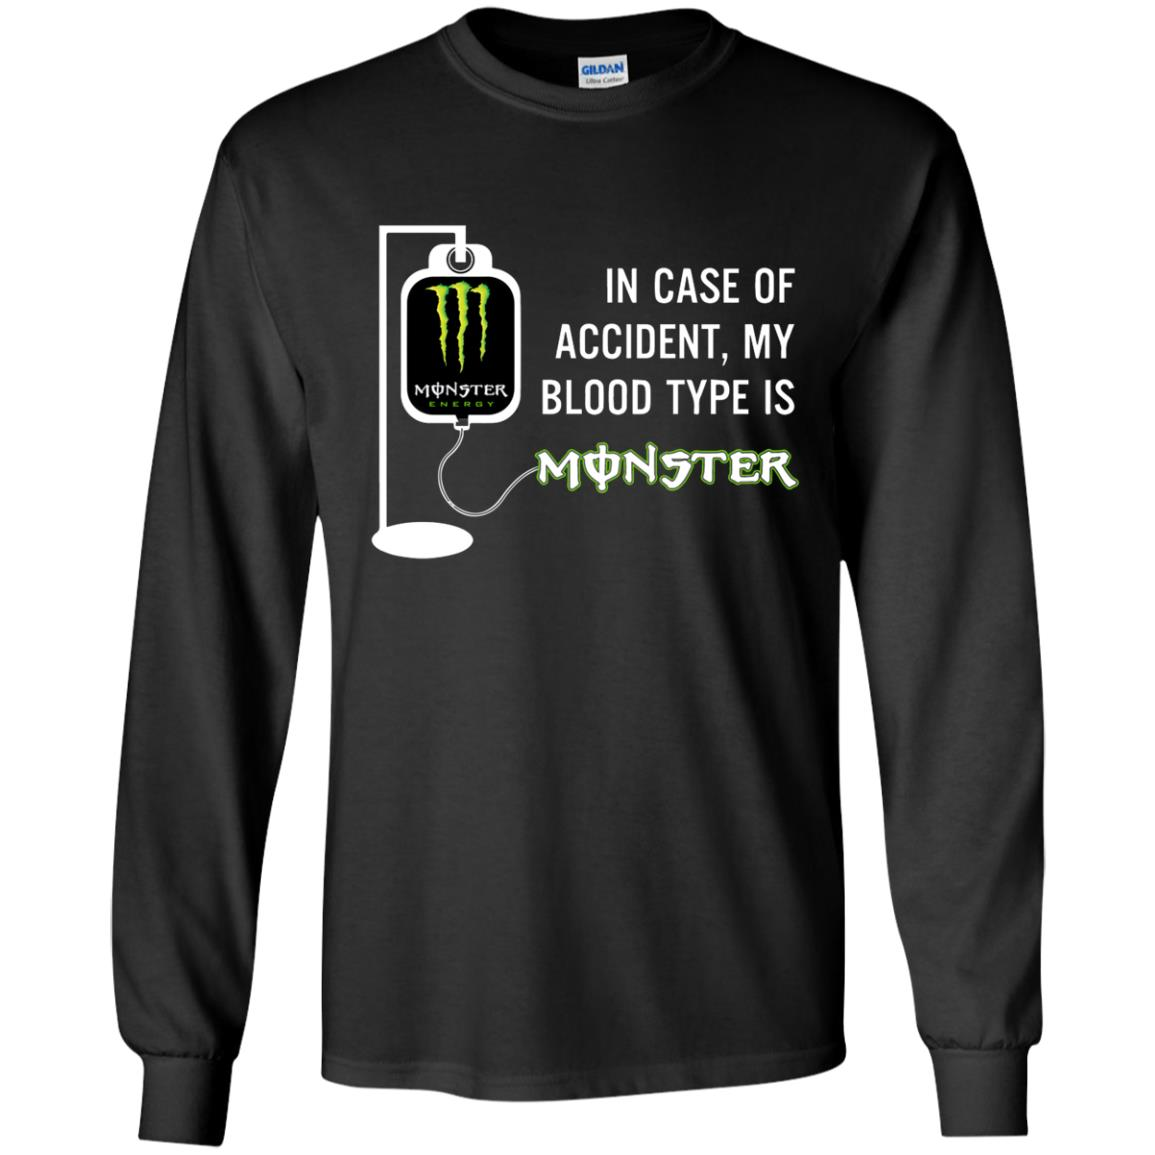 image 739 - In Case Of Accident My Blood Type Is Monster Shirt